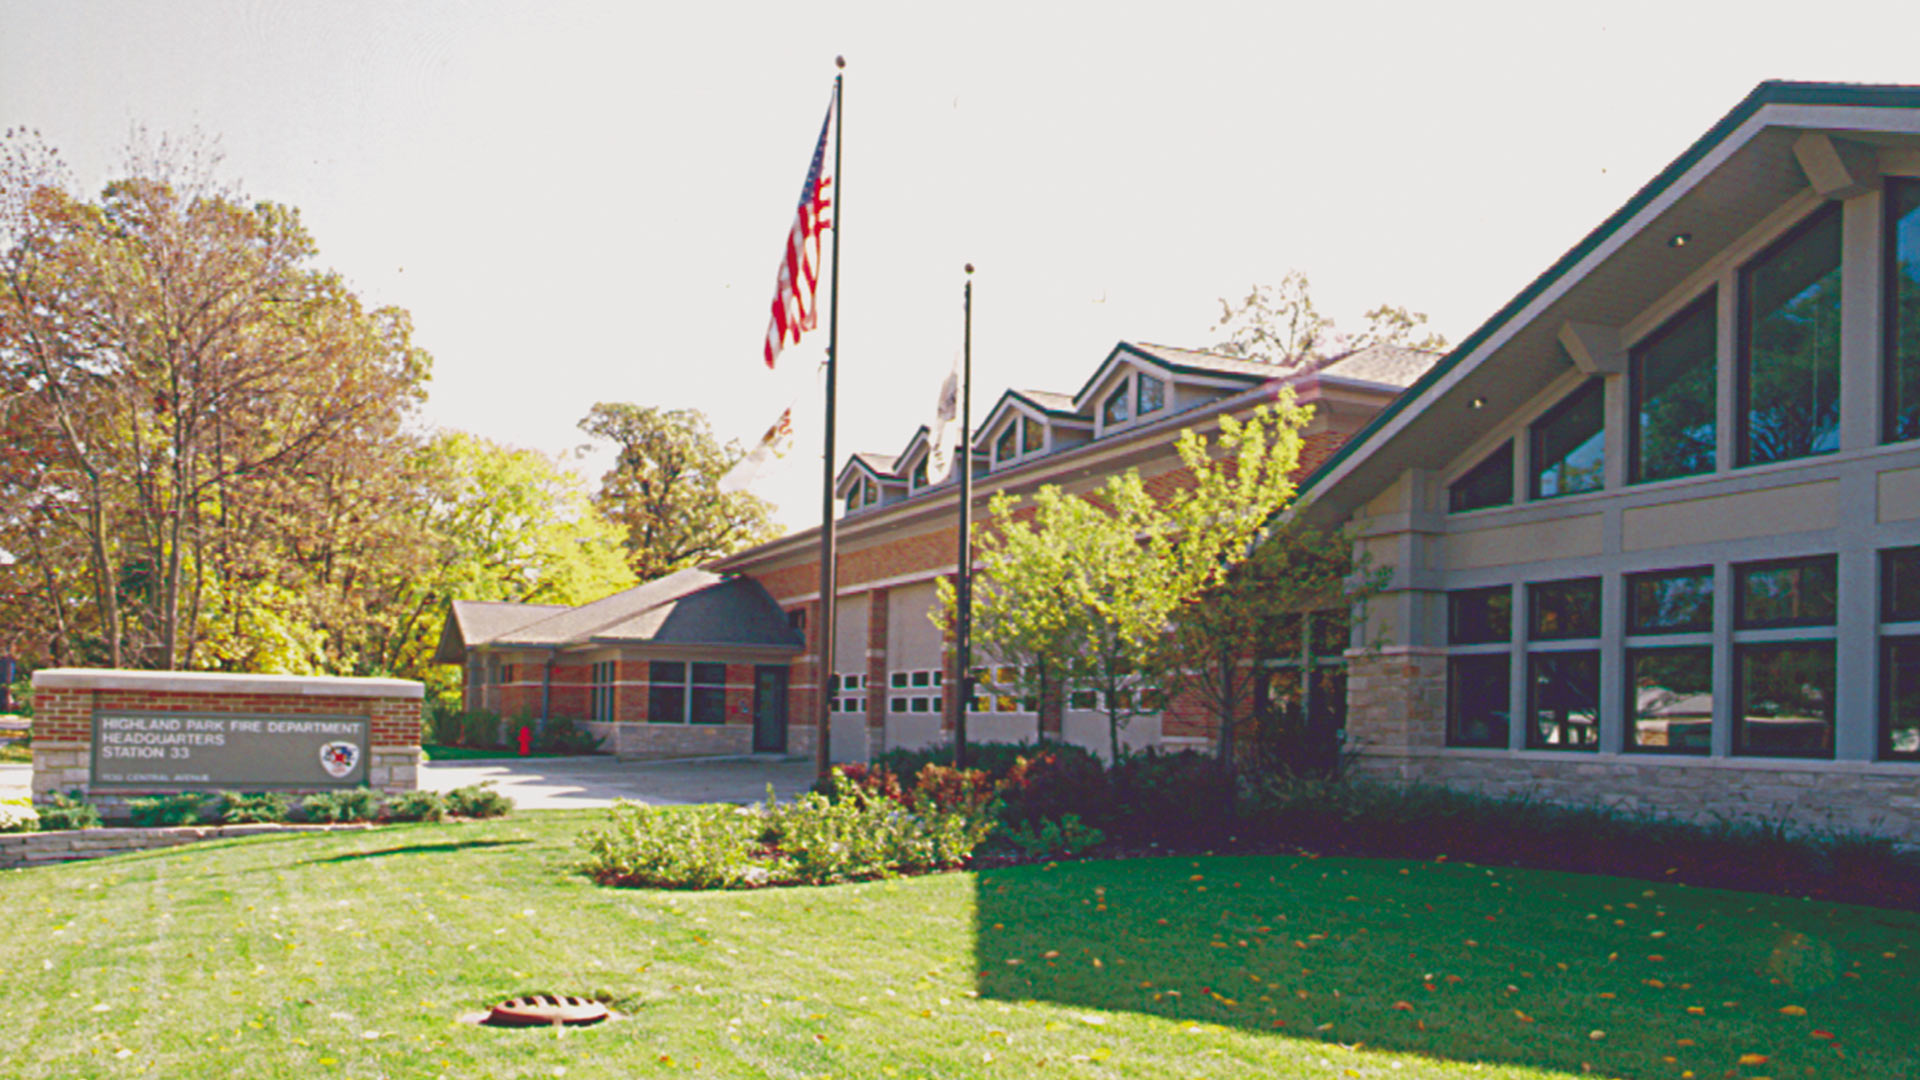 Highland Park Fire Station and Headquarters